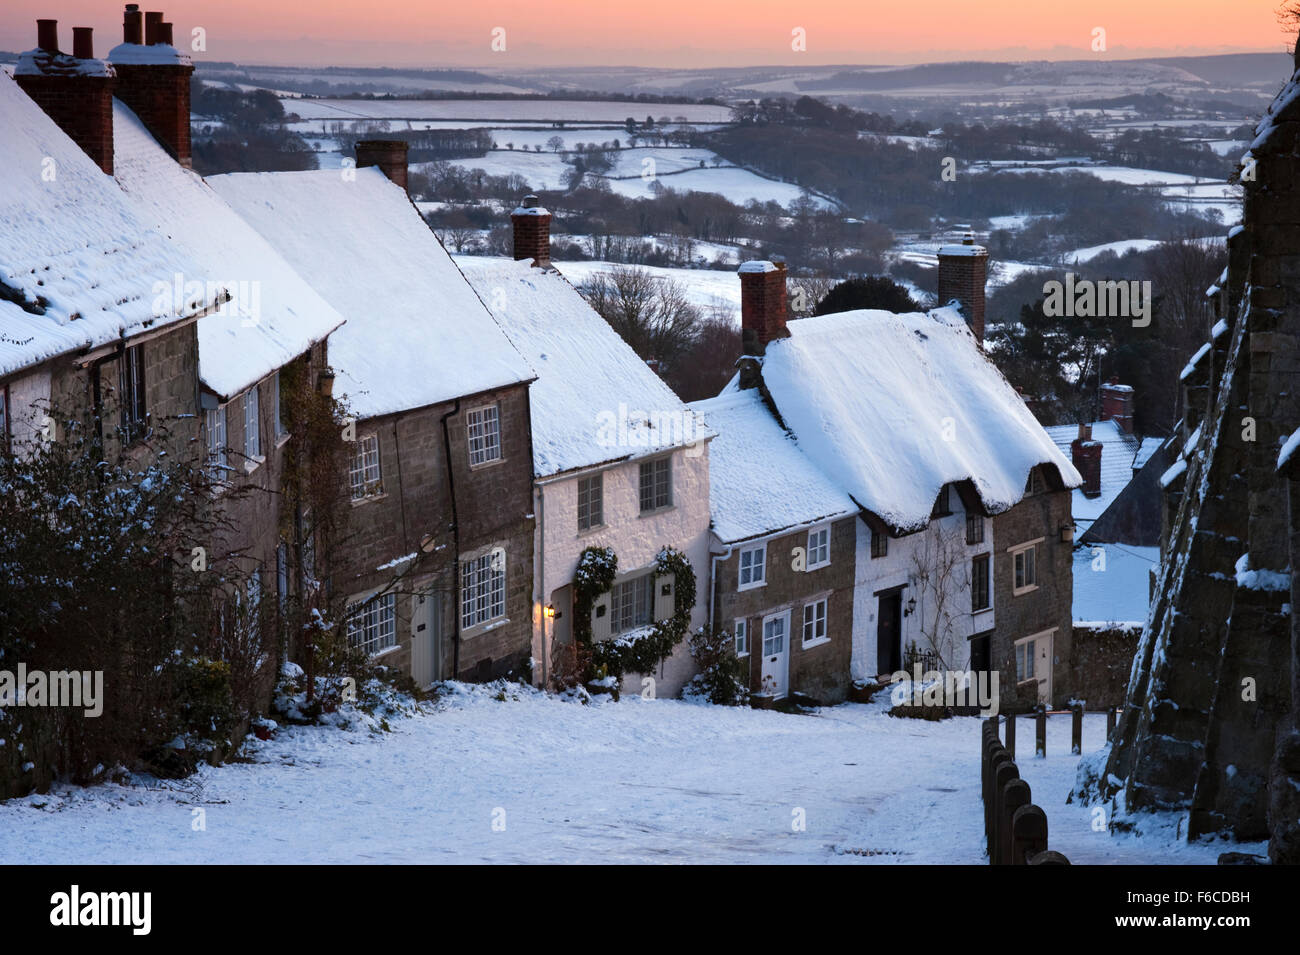 View of Gold Hill at Shaftesbury in Dorset at dusk, coated in snow during a prolonged spell of cold weather. - Stock Image